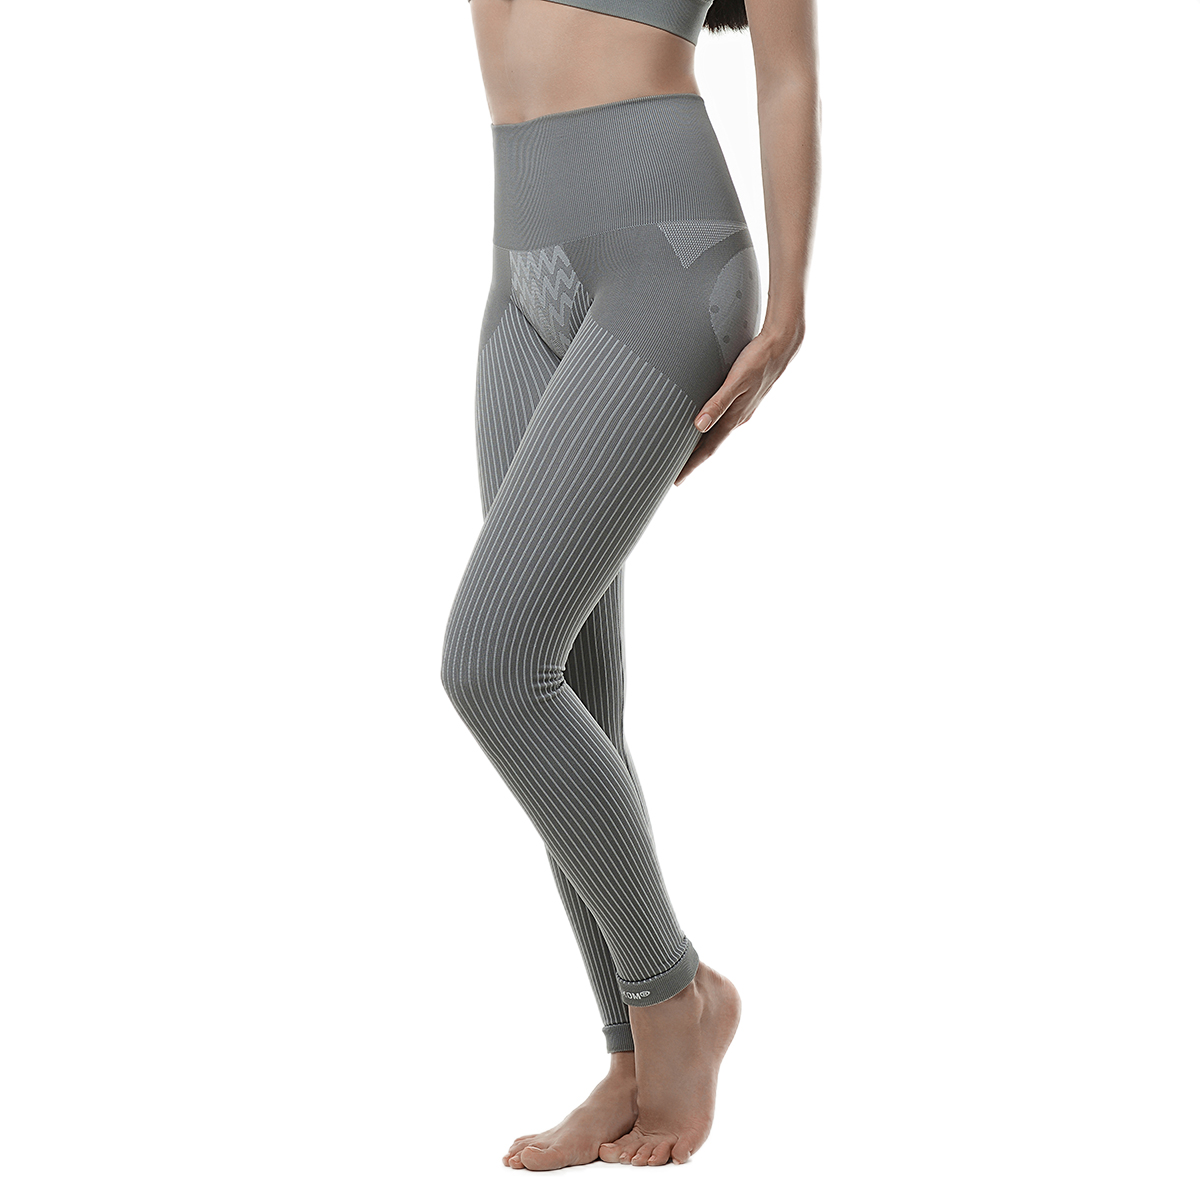 f04d71f06c0 ... SANKOM-Grey Slimming   Posture Leggings with Bamboo Fibers  (Hypoallergenic)-M ...